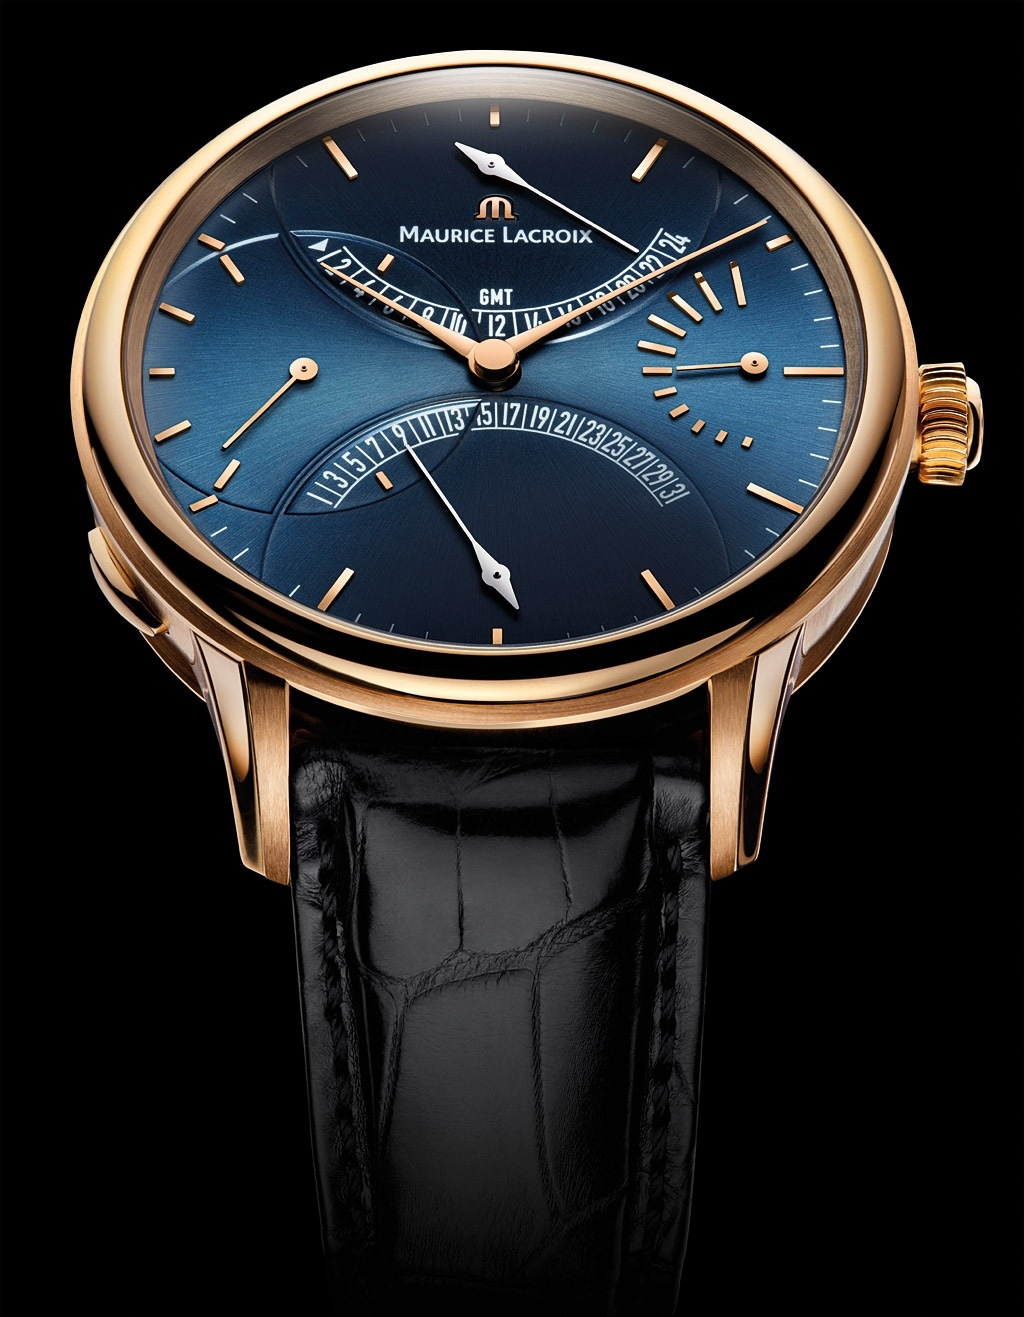 Maurice Lacroix Masterpiece Double Retrograde Edition Limitee (Ref. MP6519-PG101-430)